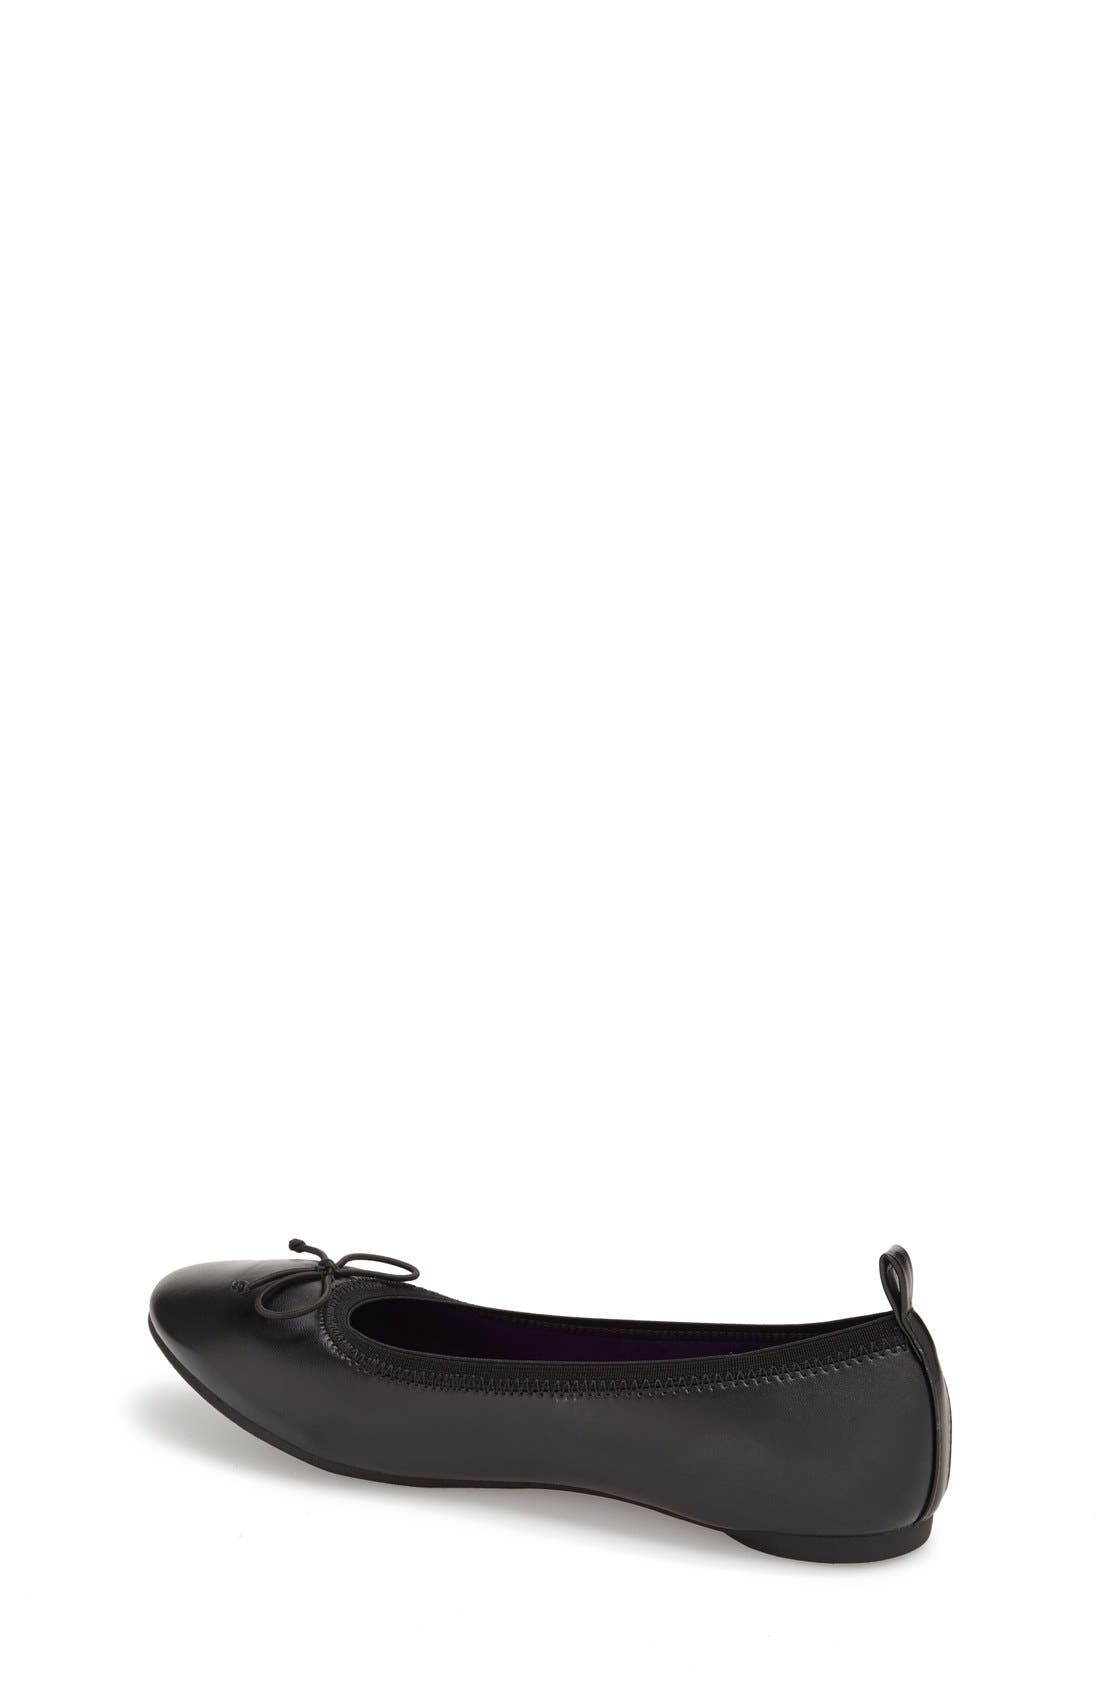 'Copy Tap' Metallic Ballet Flat,                             Alternate thumbnail 3, color,                             Black